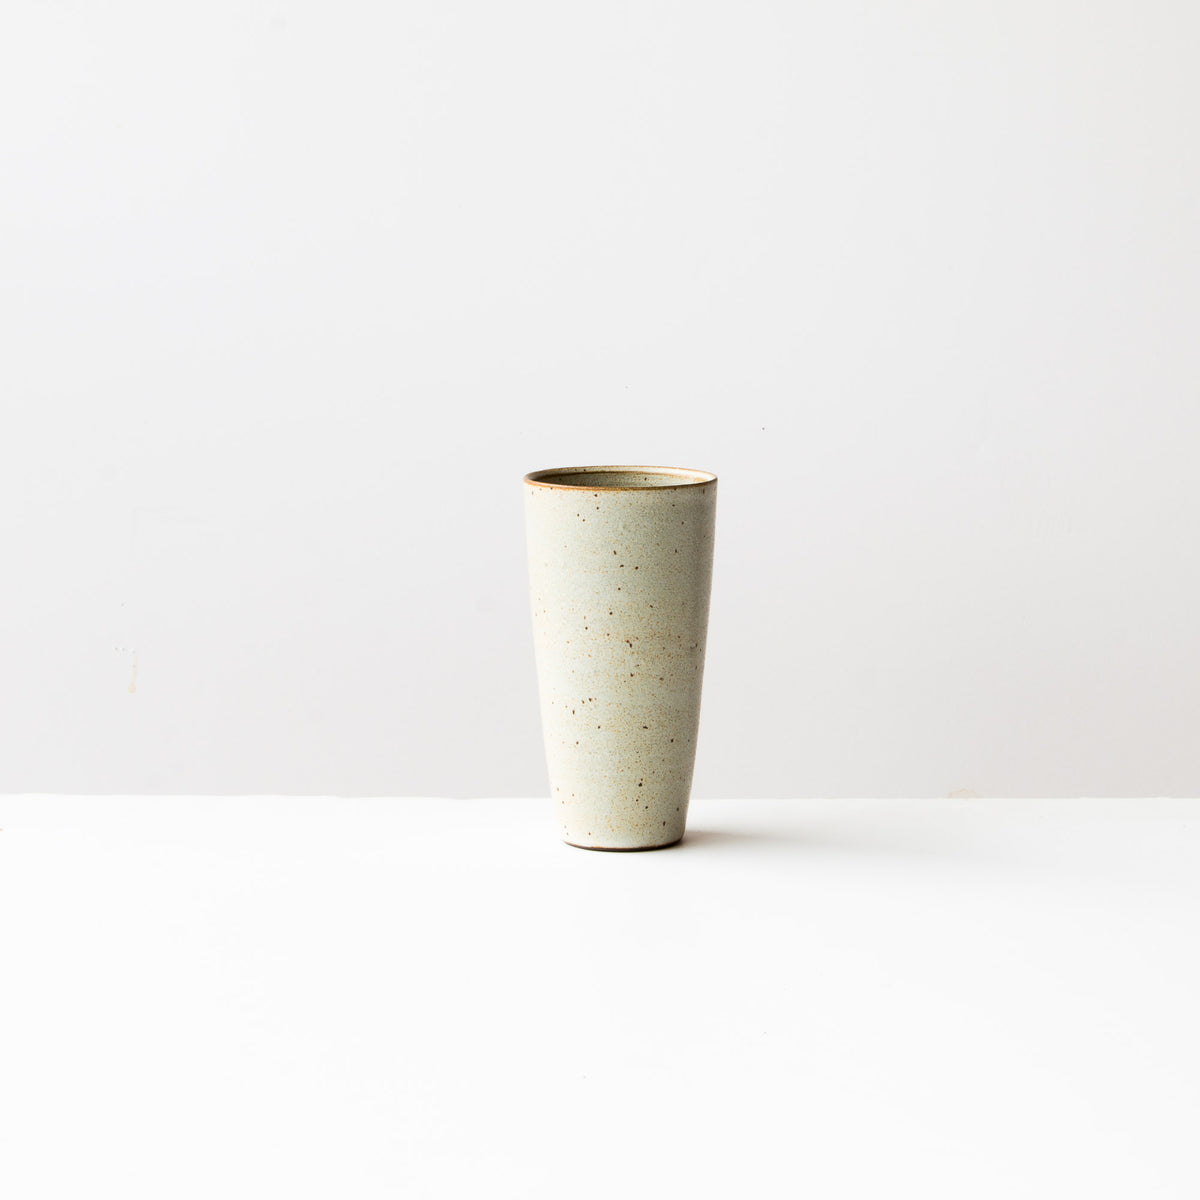 Greige Colour - Handmade Tall Ceramic Tumbler - Sold by Chic & Basta